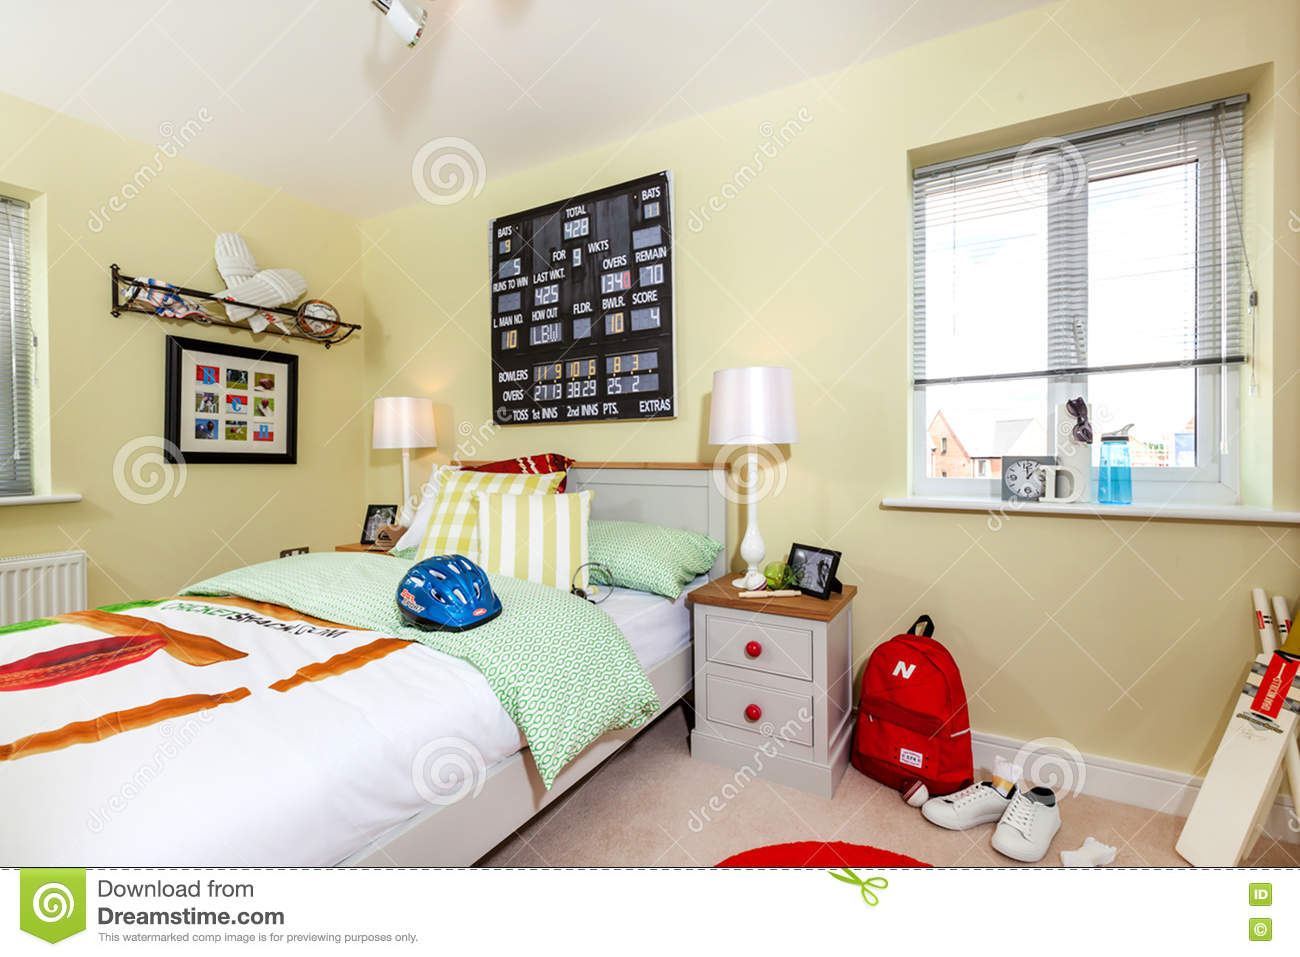 Show Home Bedroom Gorgeous Kids Show Home Bedroom Interior Editorial Image Image